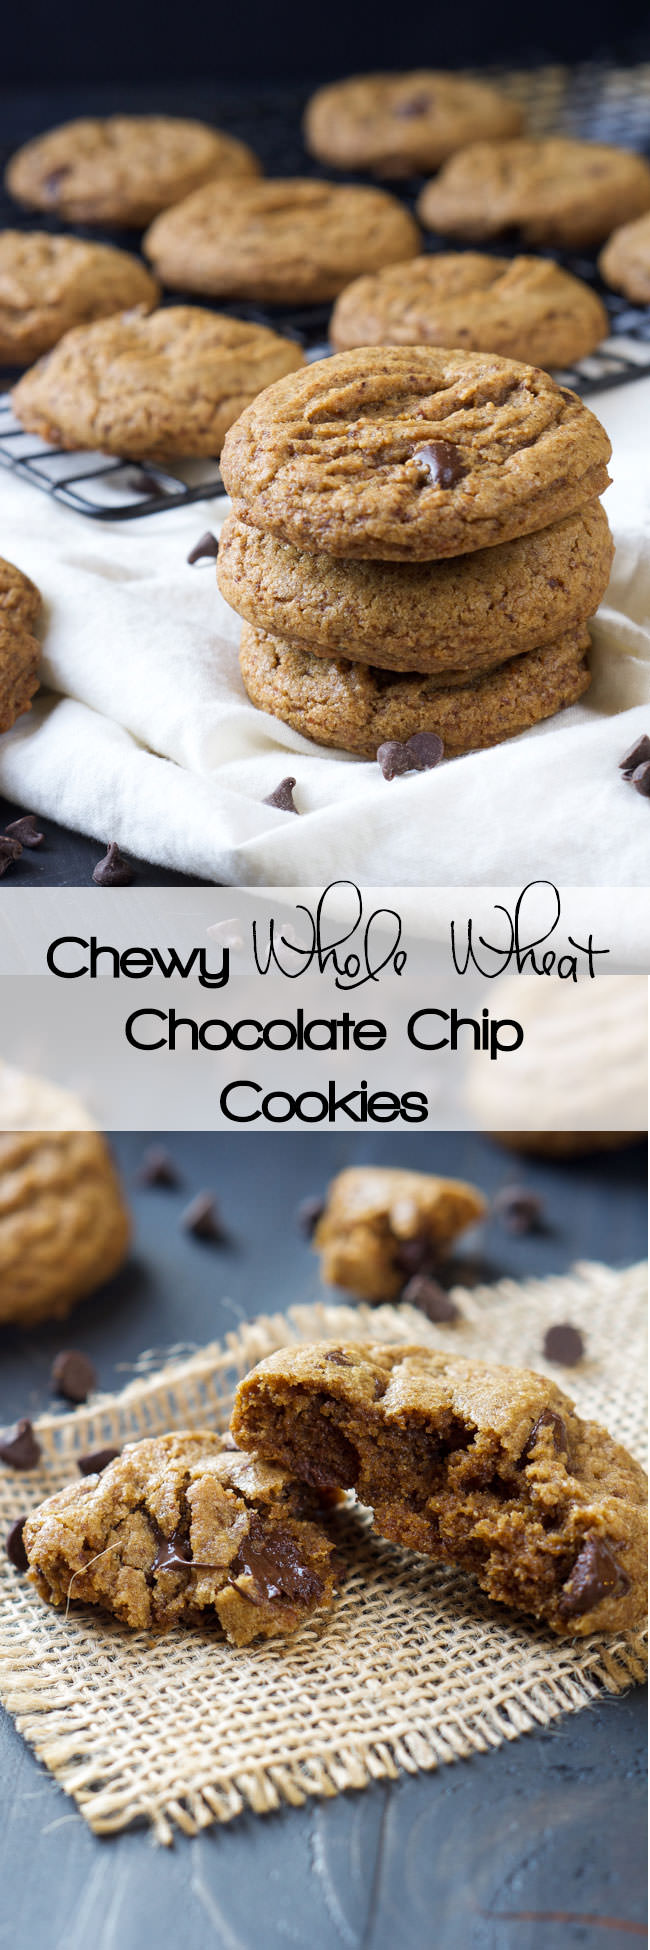 Whole Wheat Chocolate Chip Cookies With Coconut Sugar